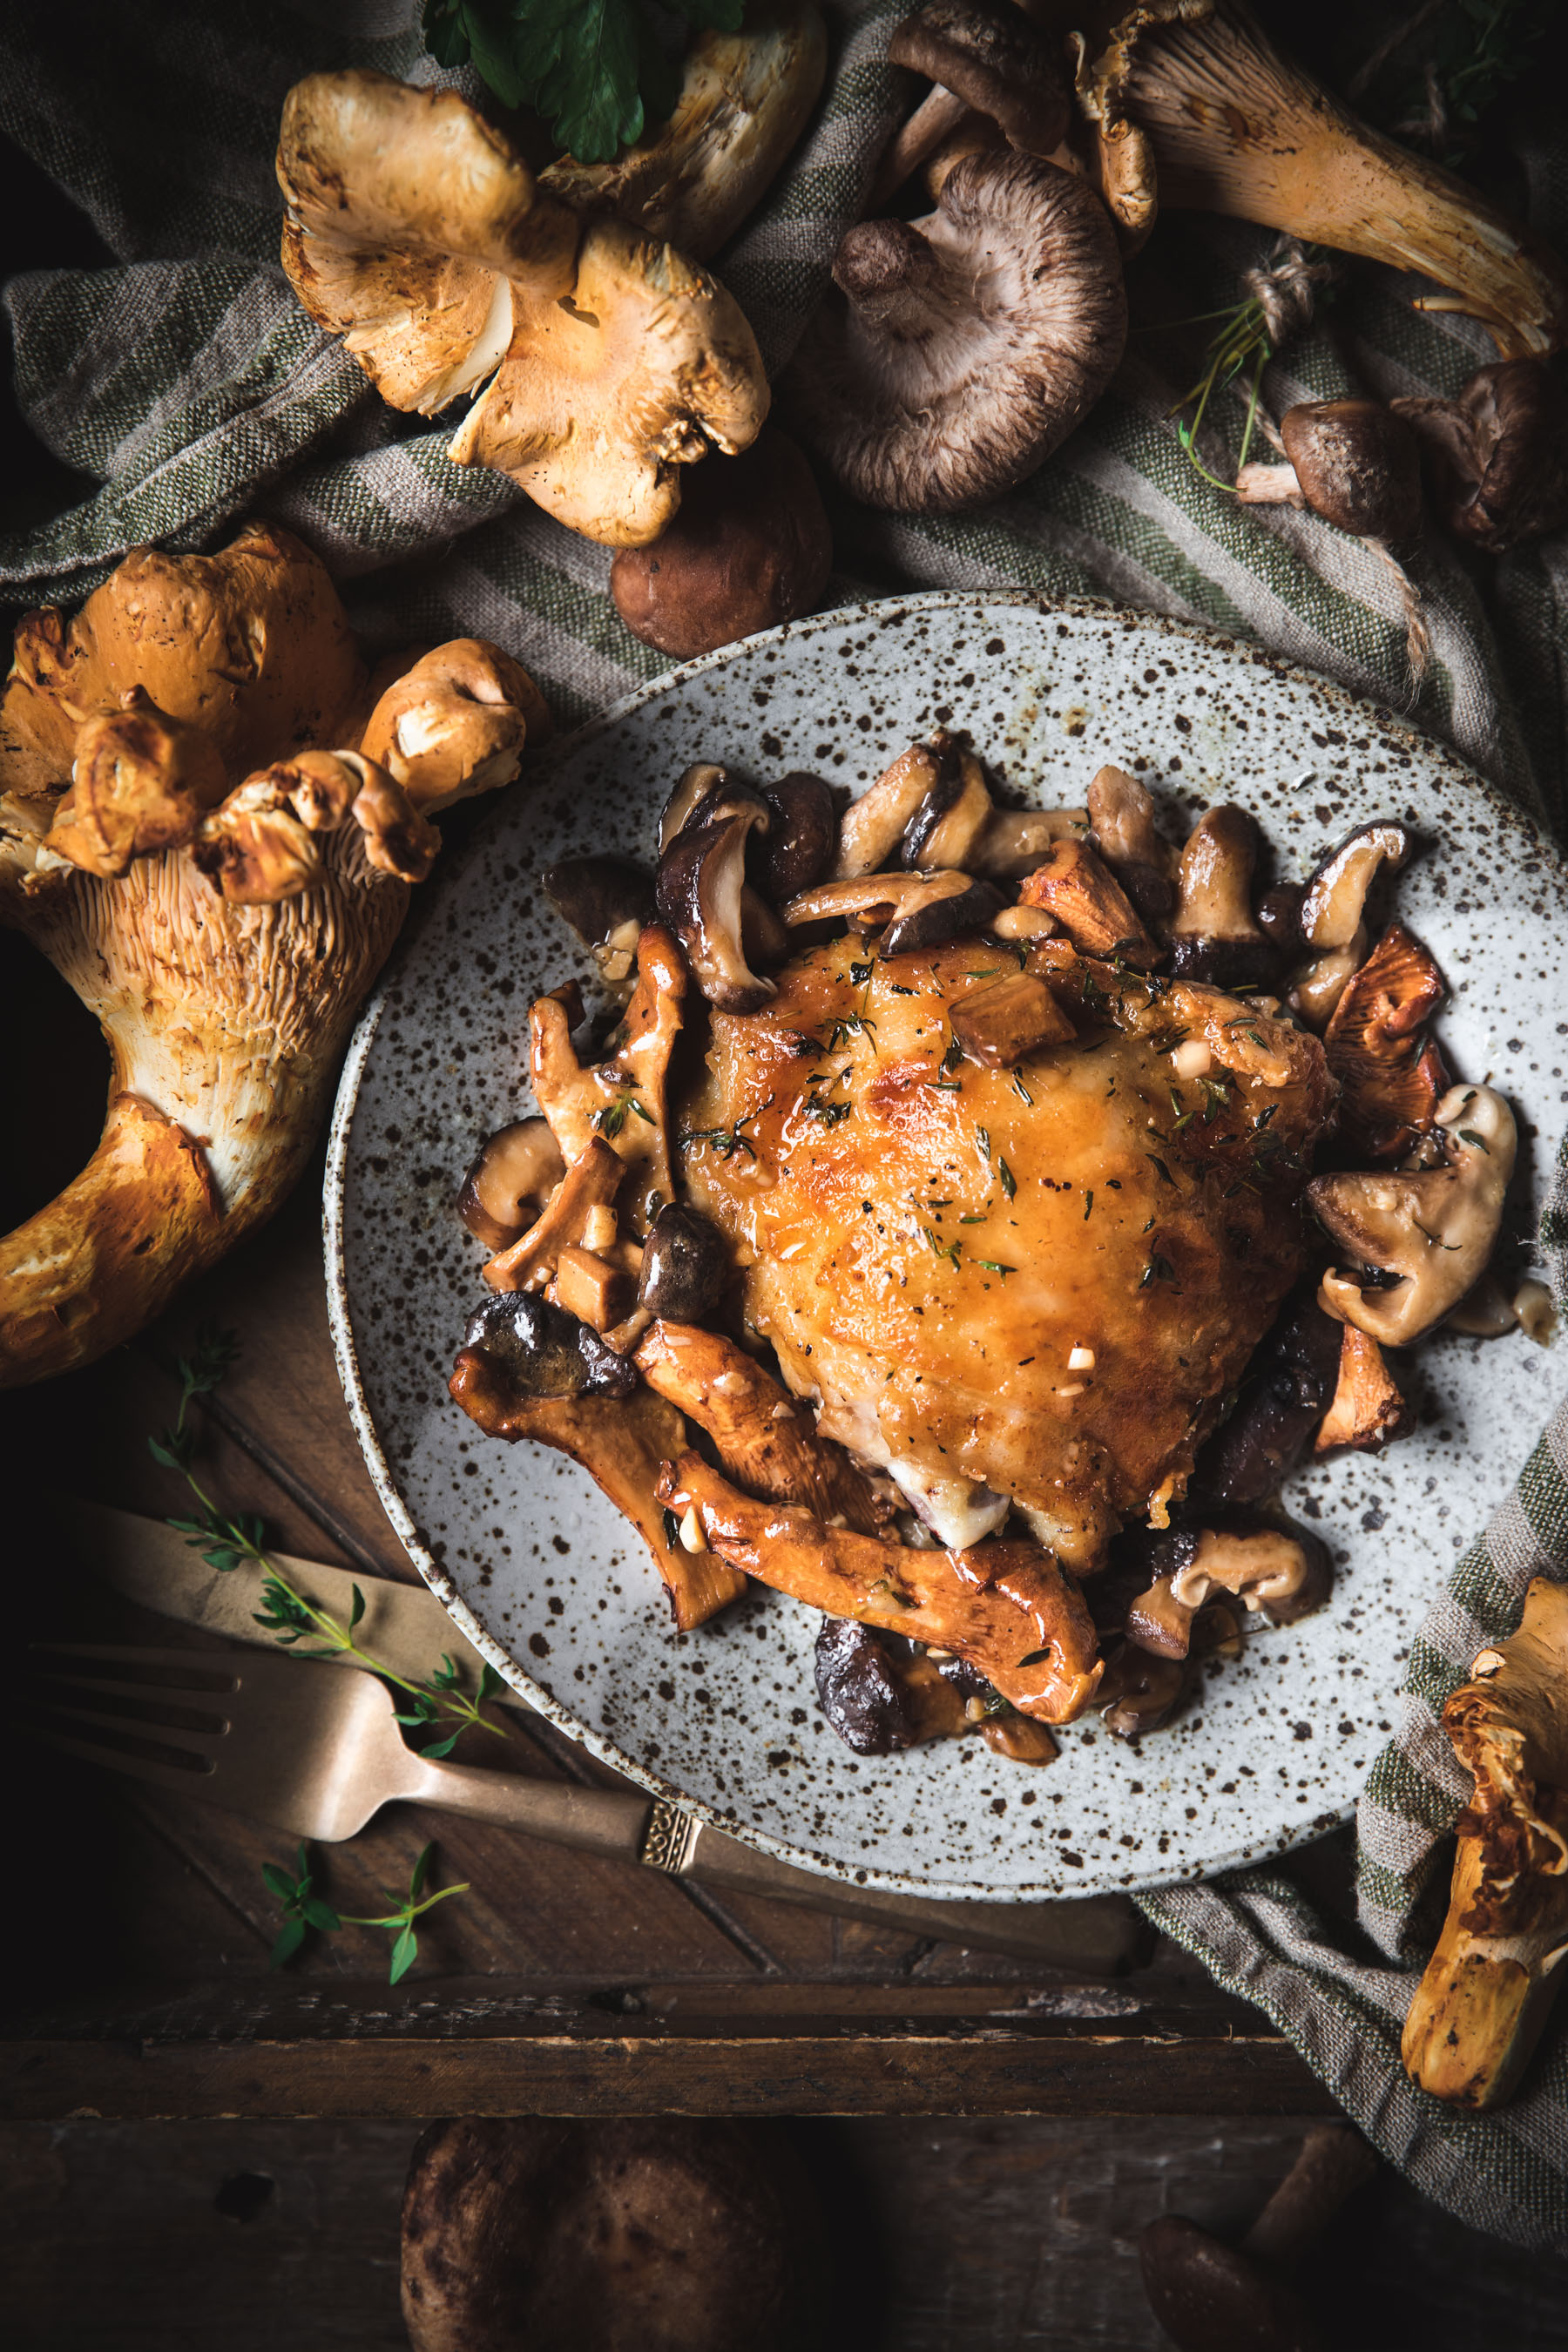 Braised Chicken with Mushrooms and White Wine